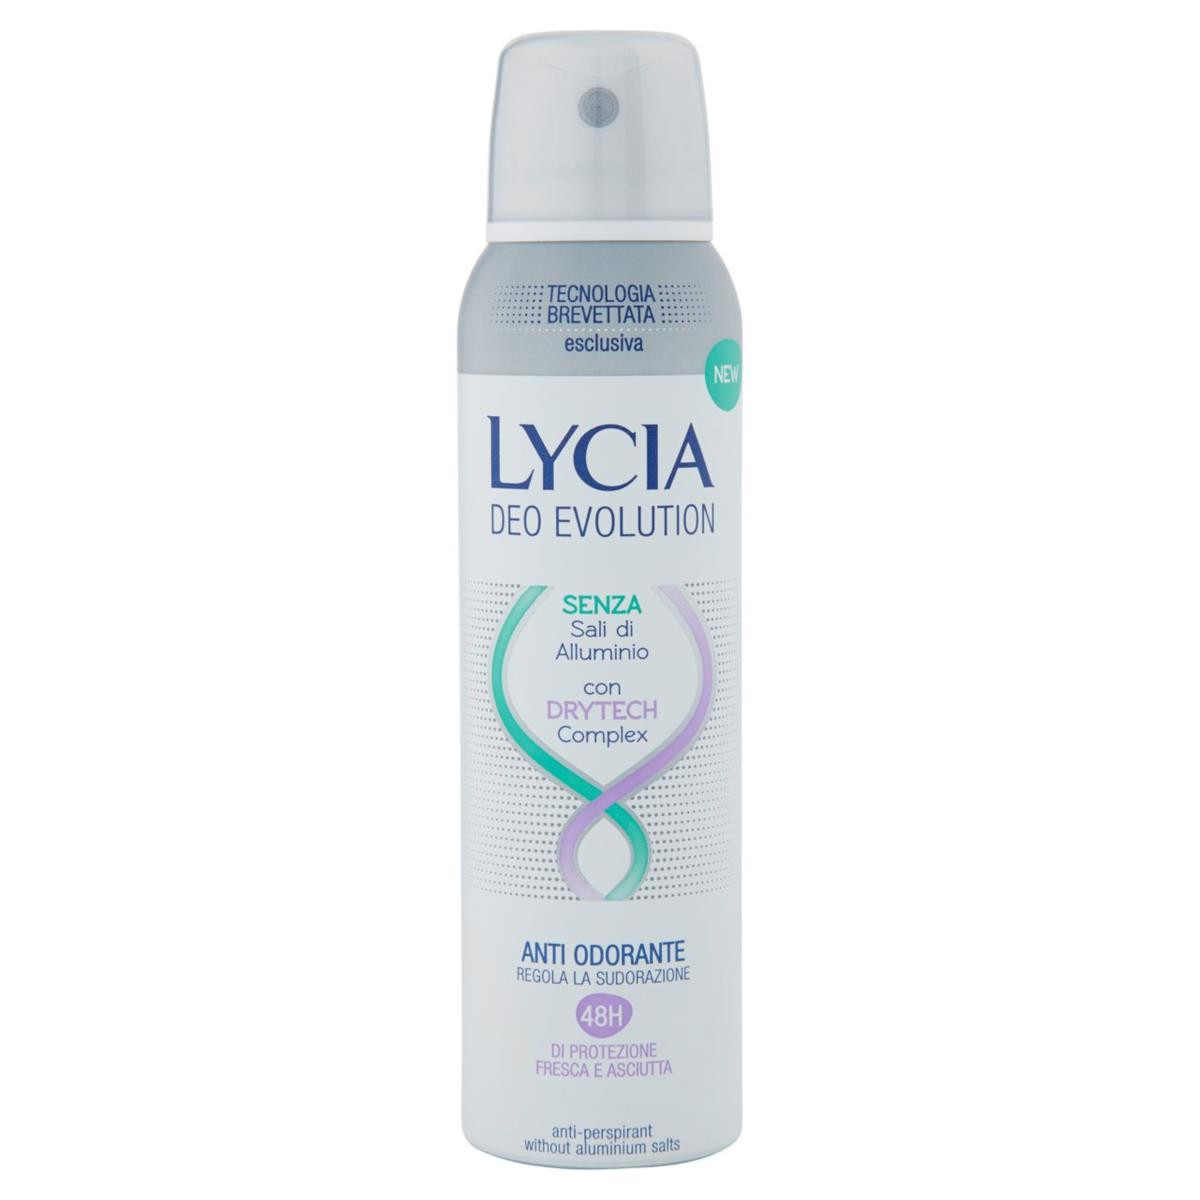 Lycia Deo Evolution Spray 150ml